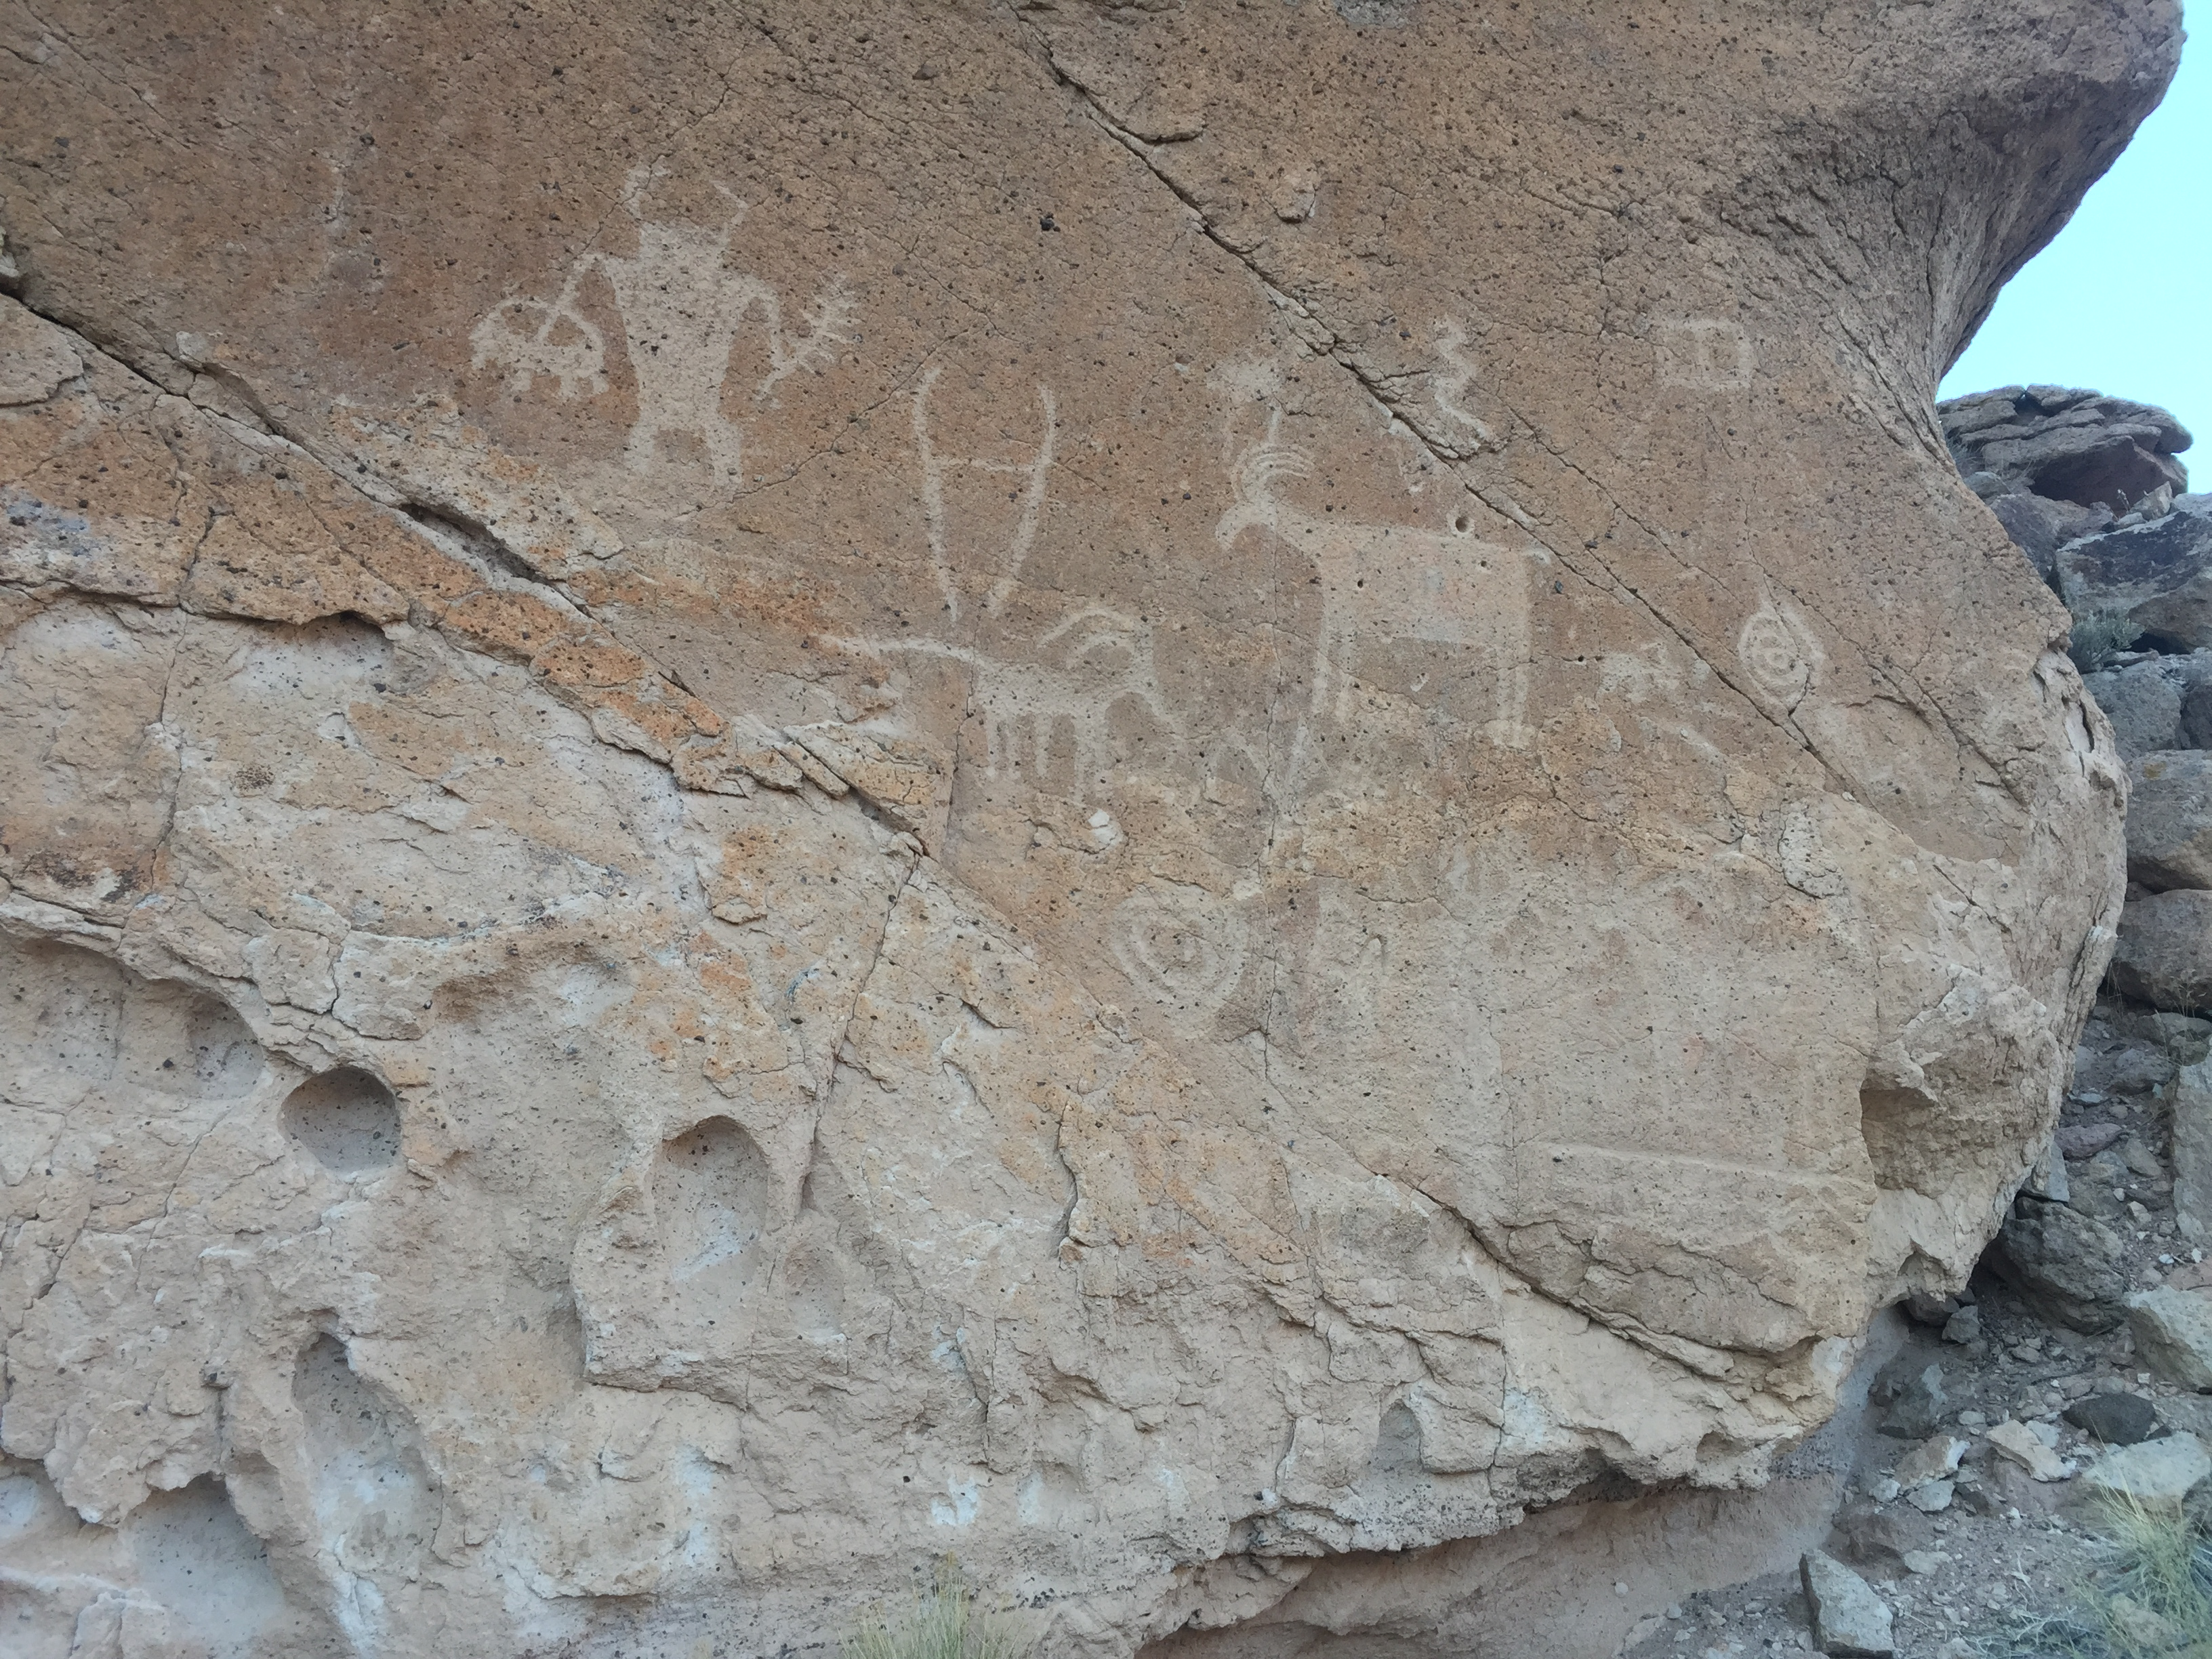 Petroglyph panel at Fremont Indian State Park, Utah, April 5, 2016| Photo courtesy Fremont Indian State Park, St. George News